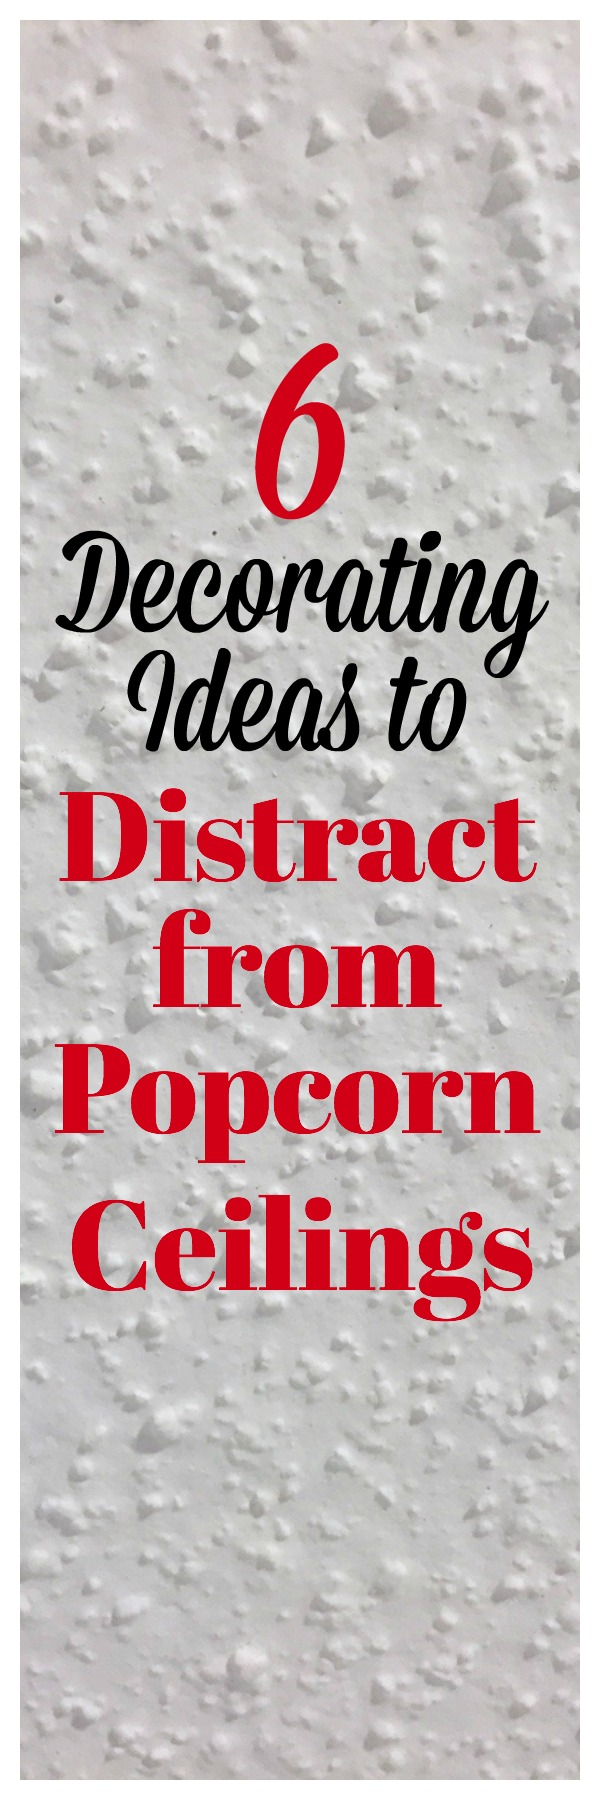 Decorating Ideas for How to Hide Popcorn Ceilings   Popcorn Ceiling Makeover   Popcorn Ceiling Cover   Popcorn Ceiling Ideas